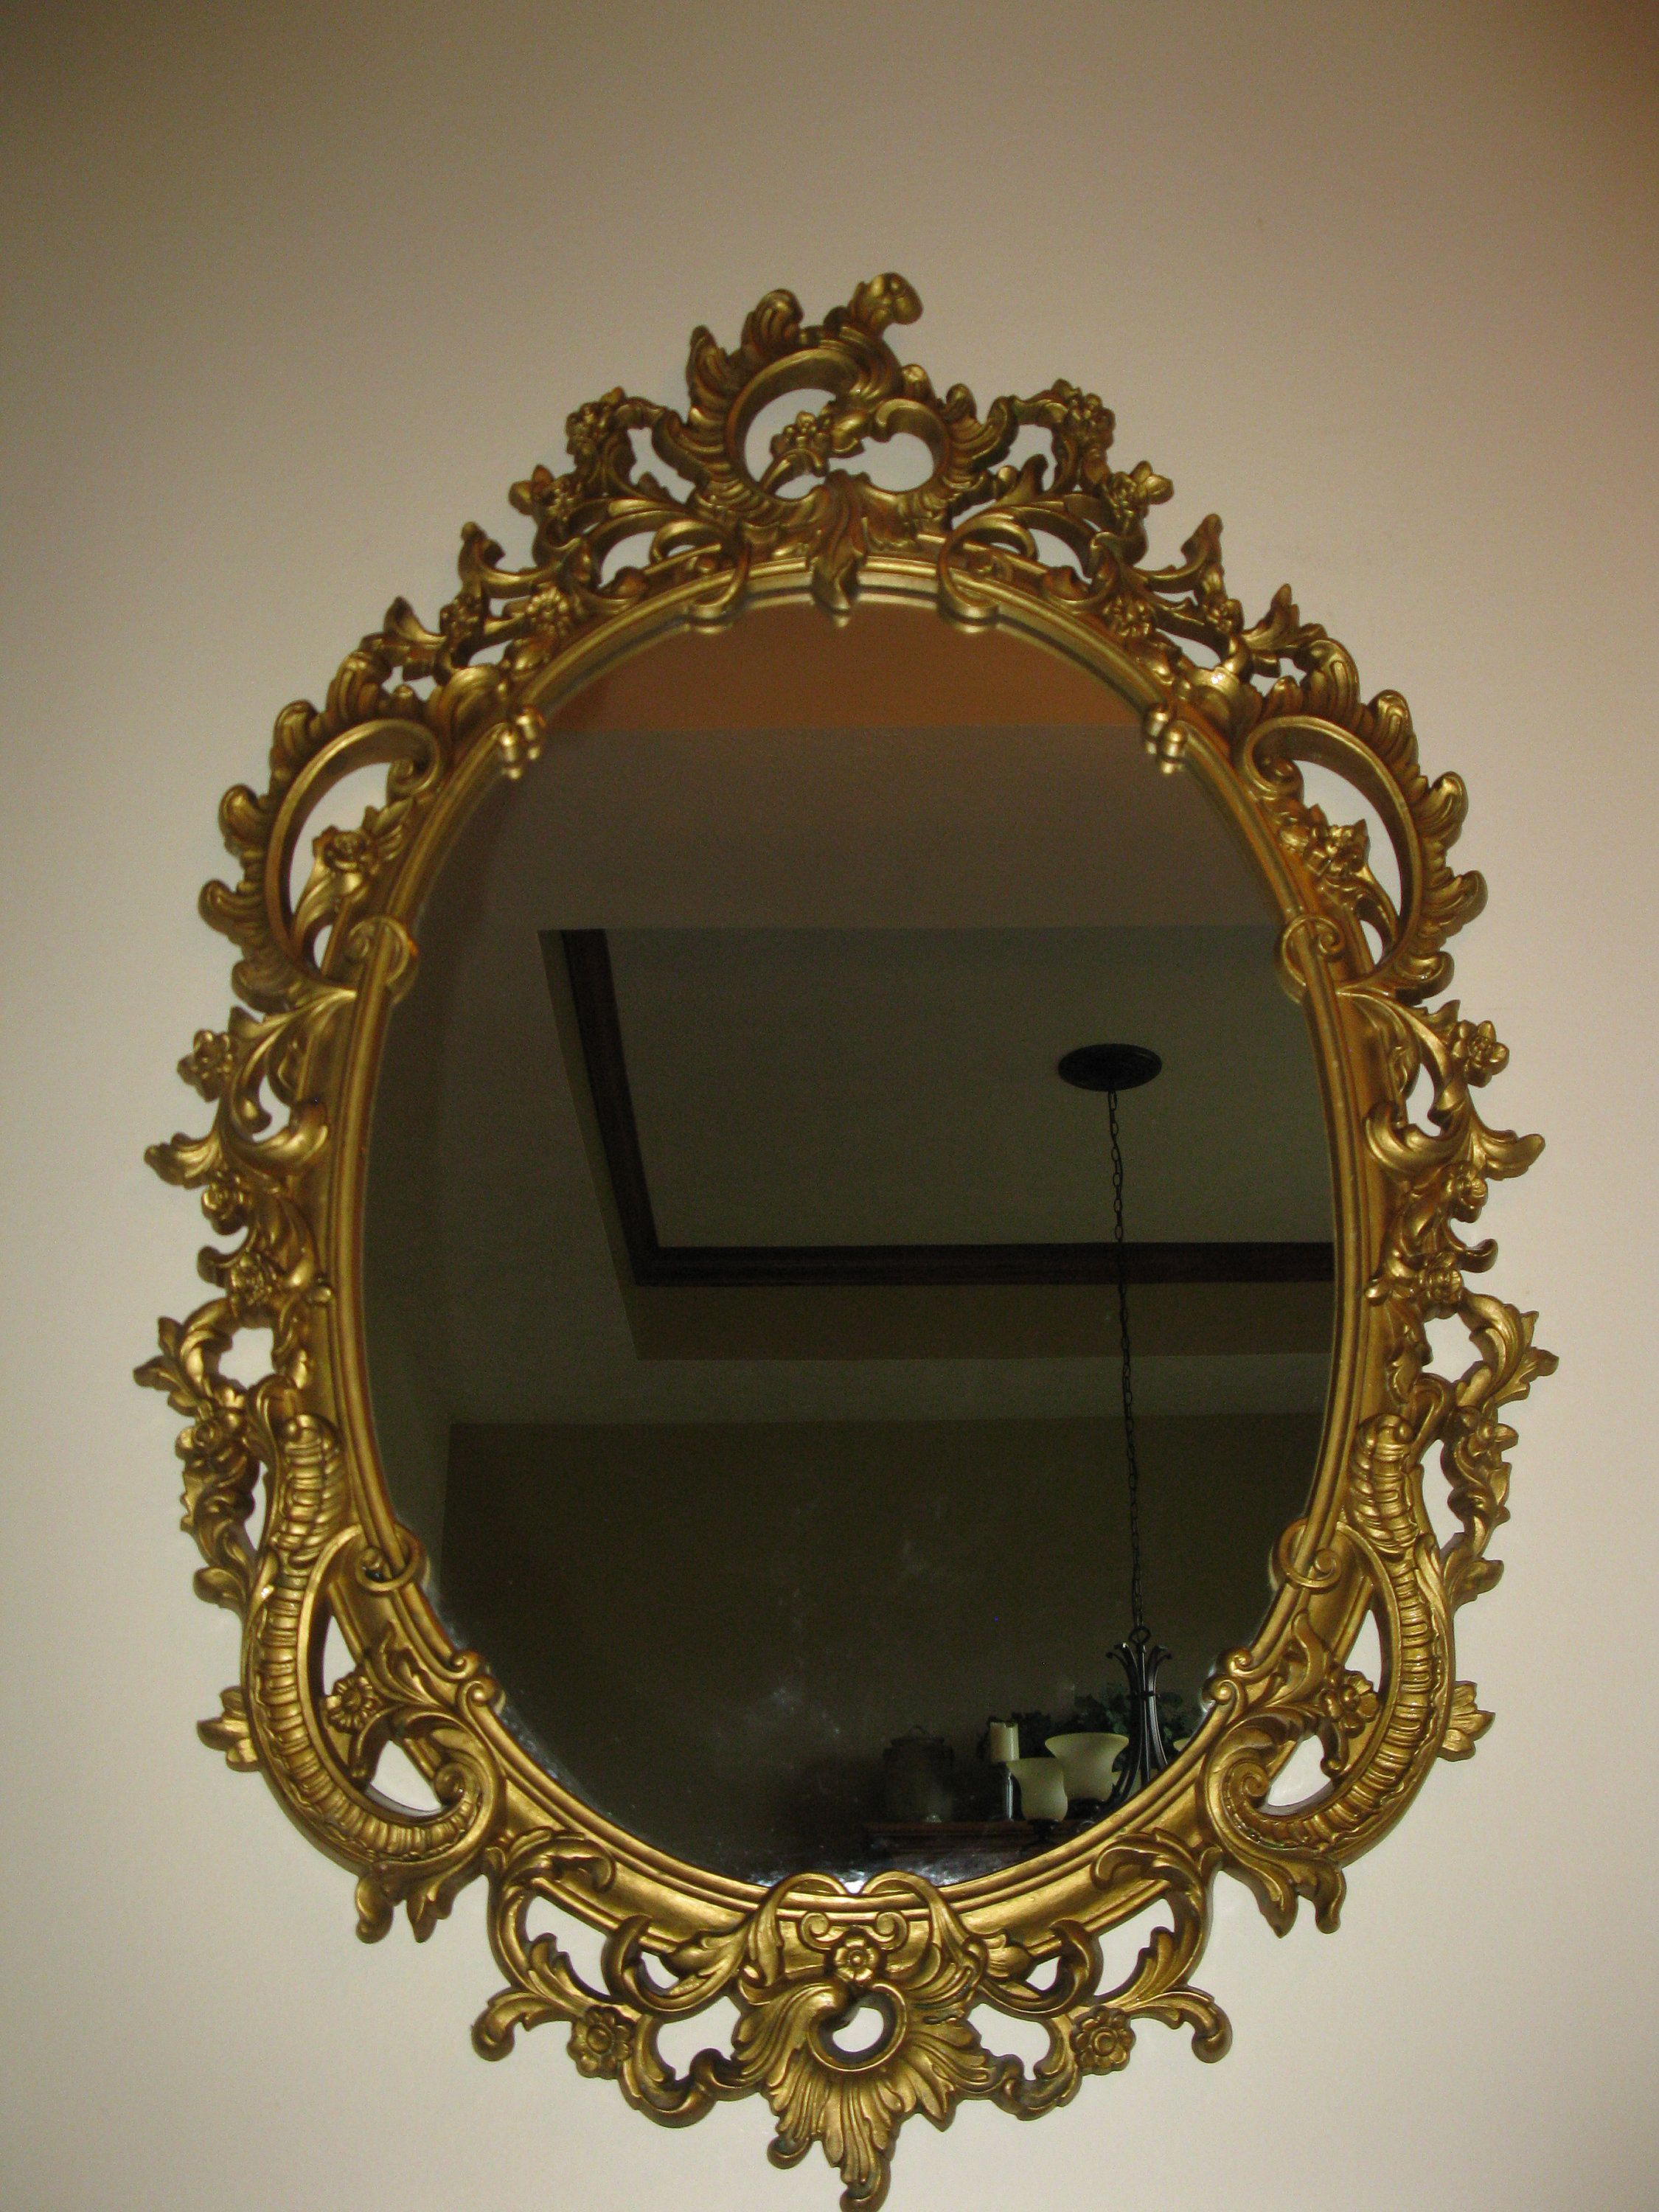 """Vintage Oval Wall Mirror Ornate Floral Frame 33/"""" x 20/"""" Made in USA"""